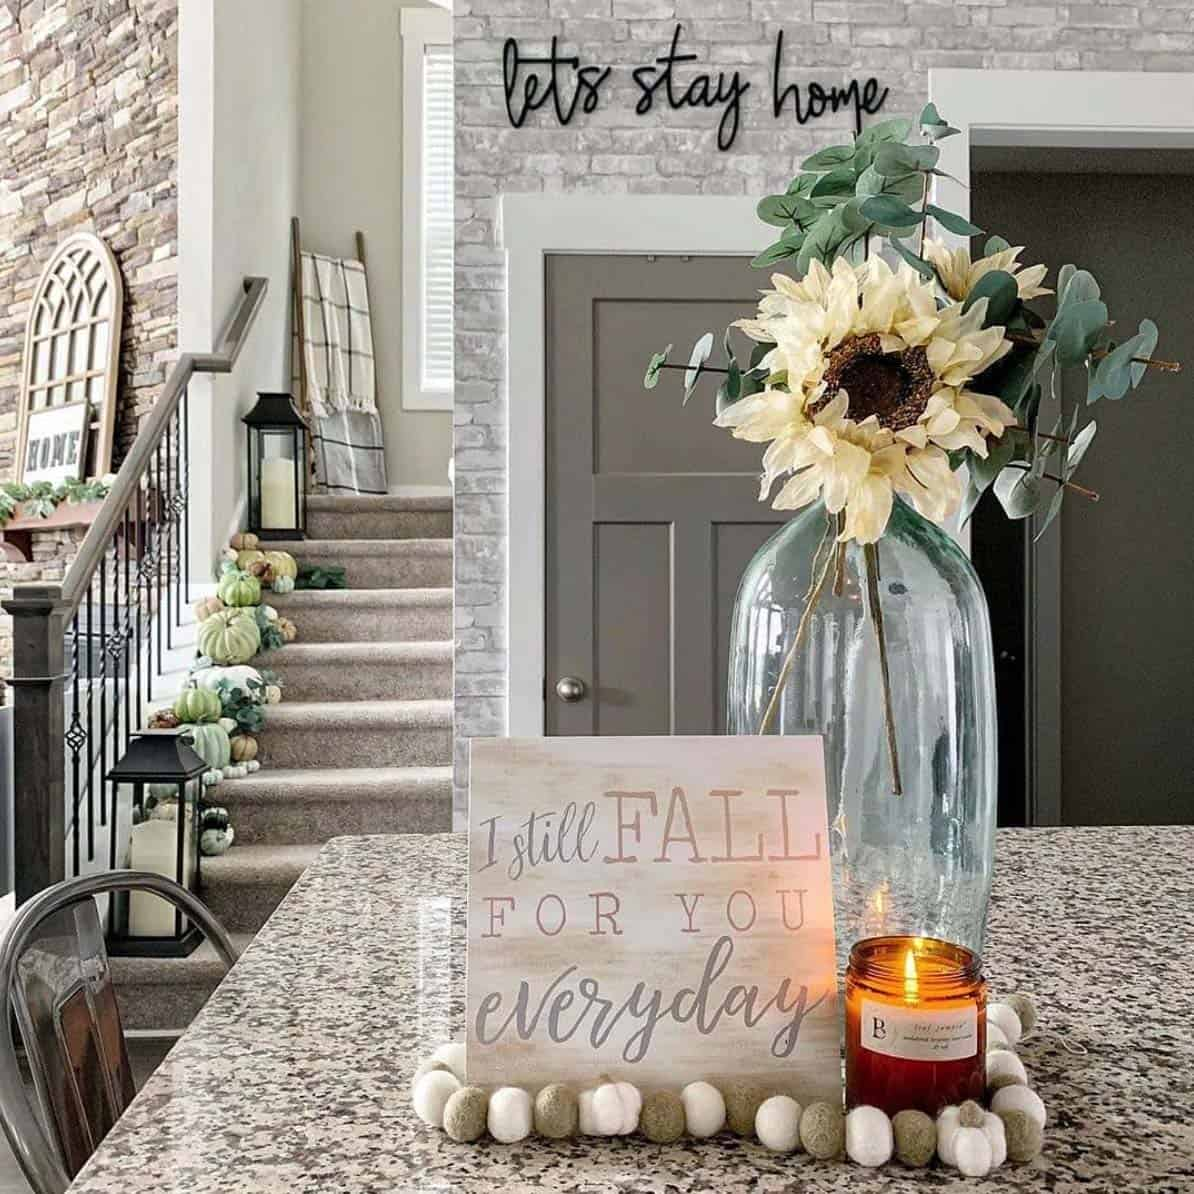 Cozy-Farmhouse-Fall-Decor-Ideas-24-1-Kindesign